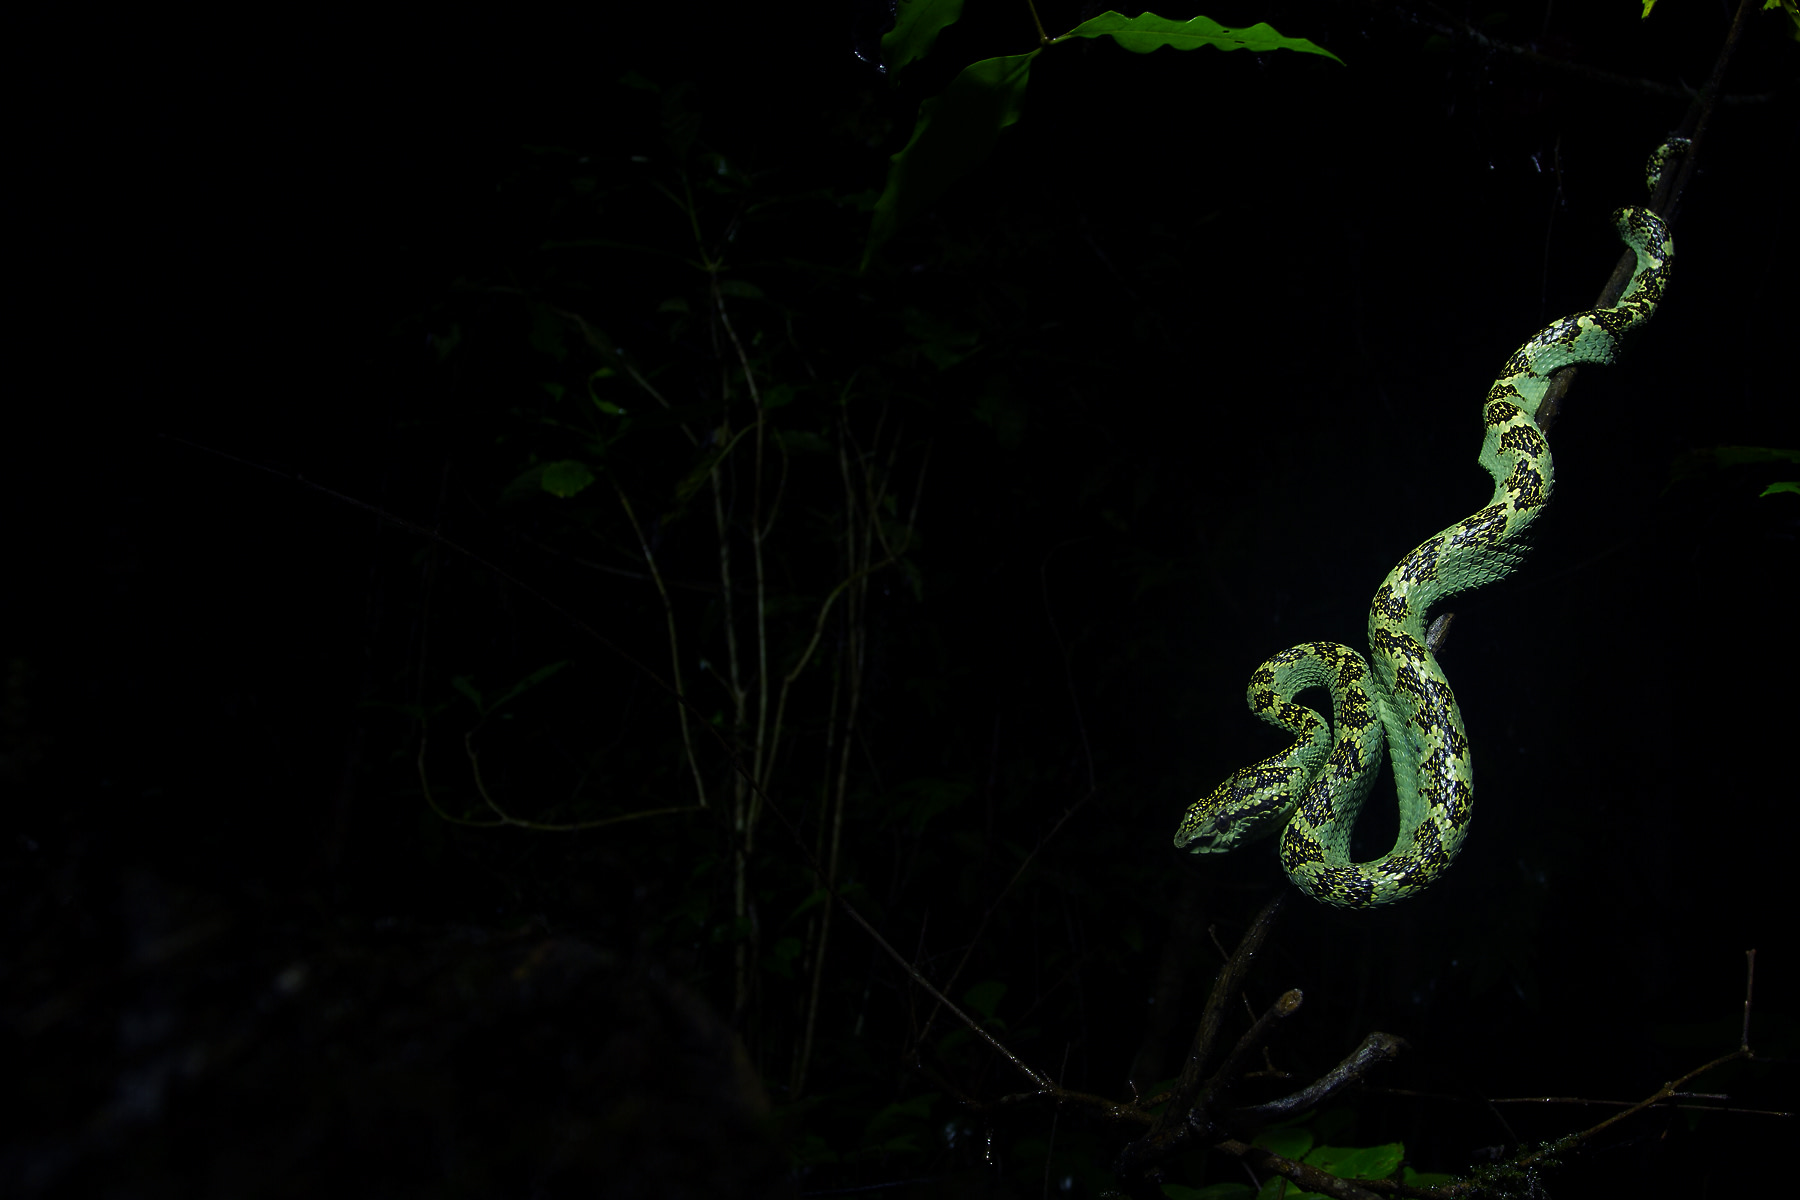 """Monsoon is the best time to observe herpetofauna, as they are more active during this season. However, it is important to maintain a respectable distance, especially when photographing snakes like this Malabar pit viper from Agumbe. """"I wanted to capture the essence of the snake and its nocturnal world in this photograph,"""" says Shreeram. """"I used a torch to paint the snake, keeping the rest of the habitat in the dark. It's quite a challenge to locate them in the day as they blend into the forest, coiled up on a leafy branch, or root somewhere."""" Photo: Shreeram MV"""